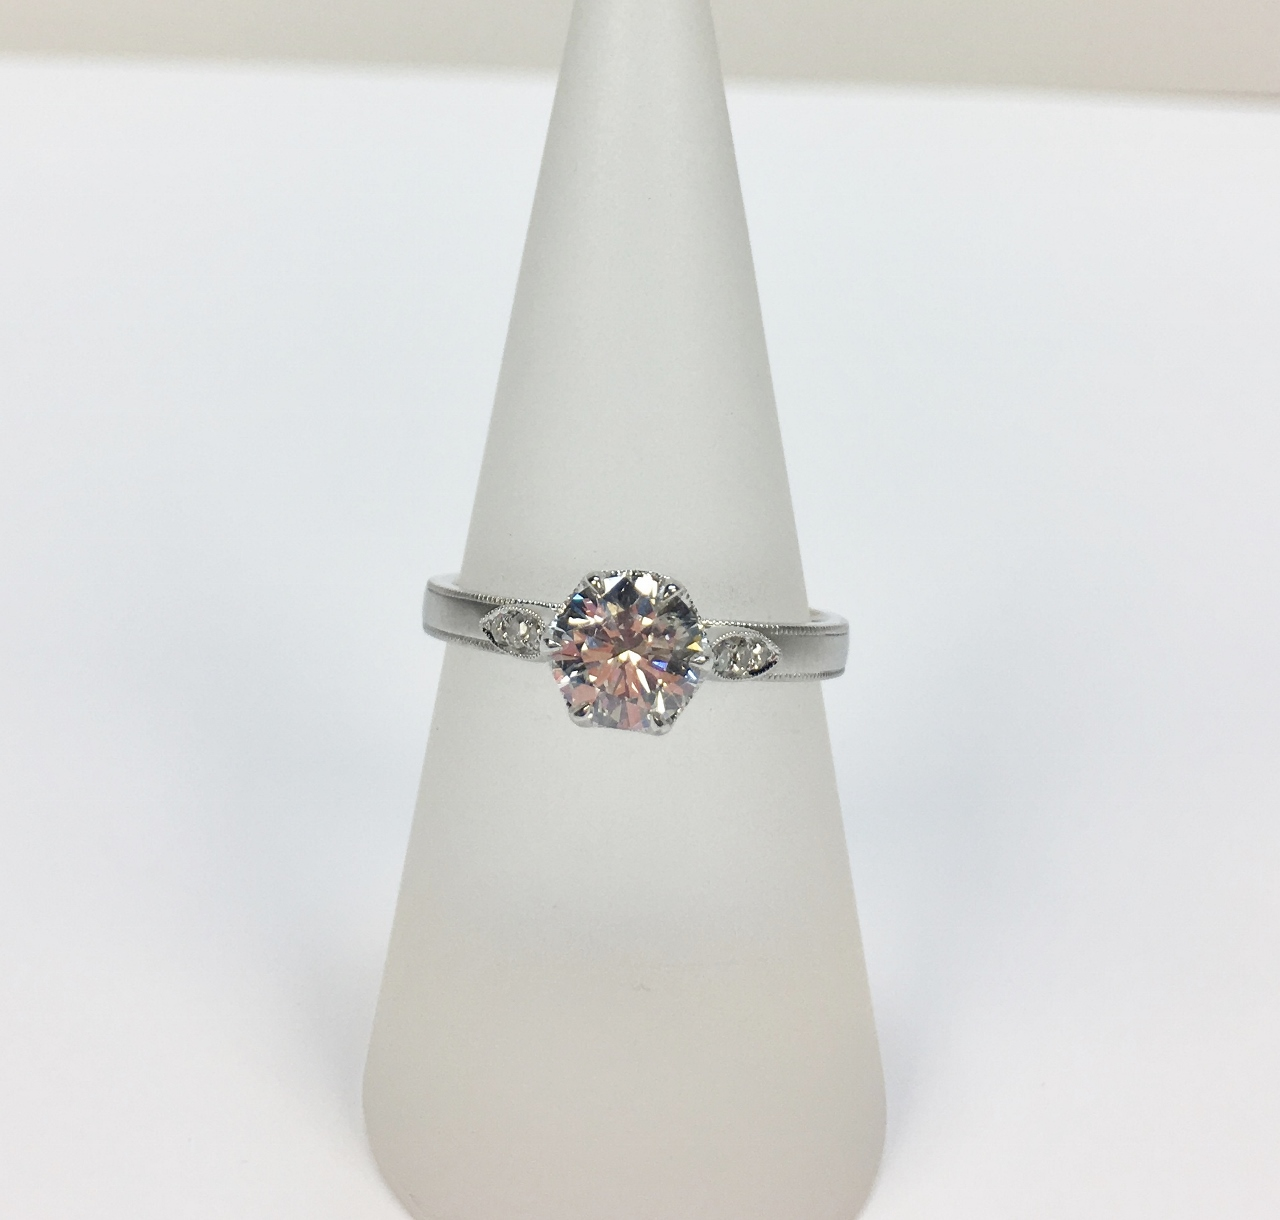 0.85 Carats Solitaire Diamond White Gold Ring